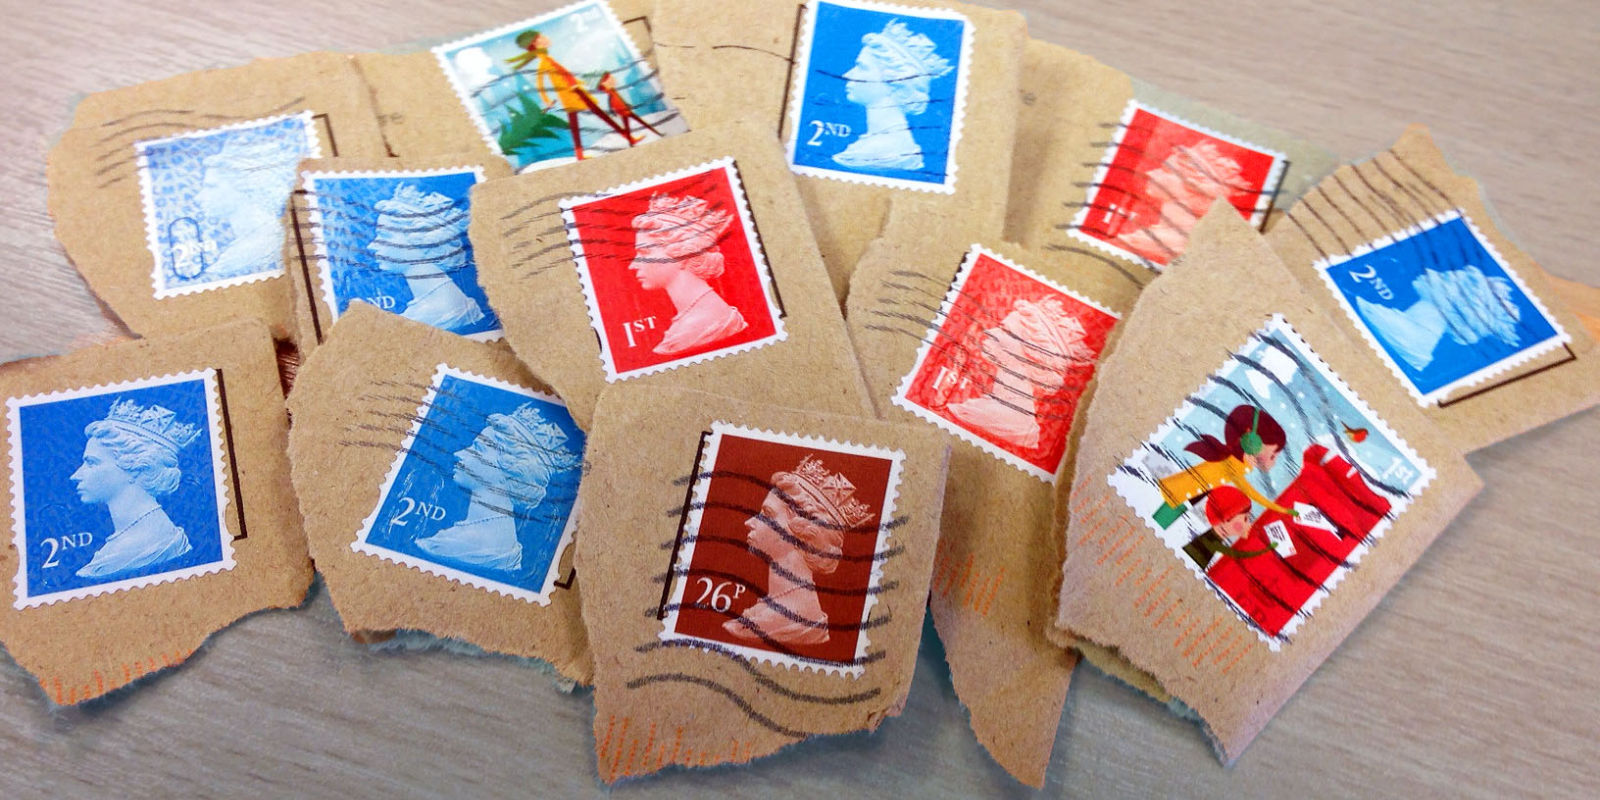 Photo of used stamps